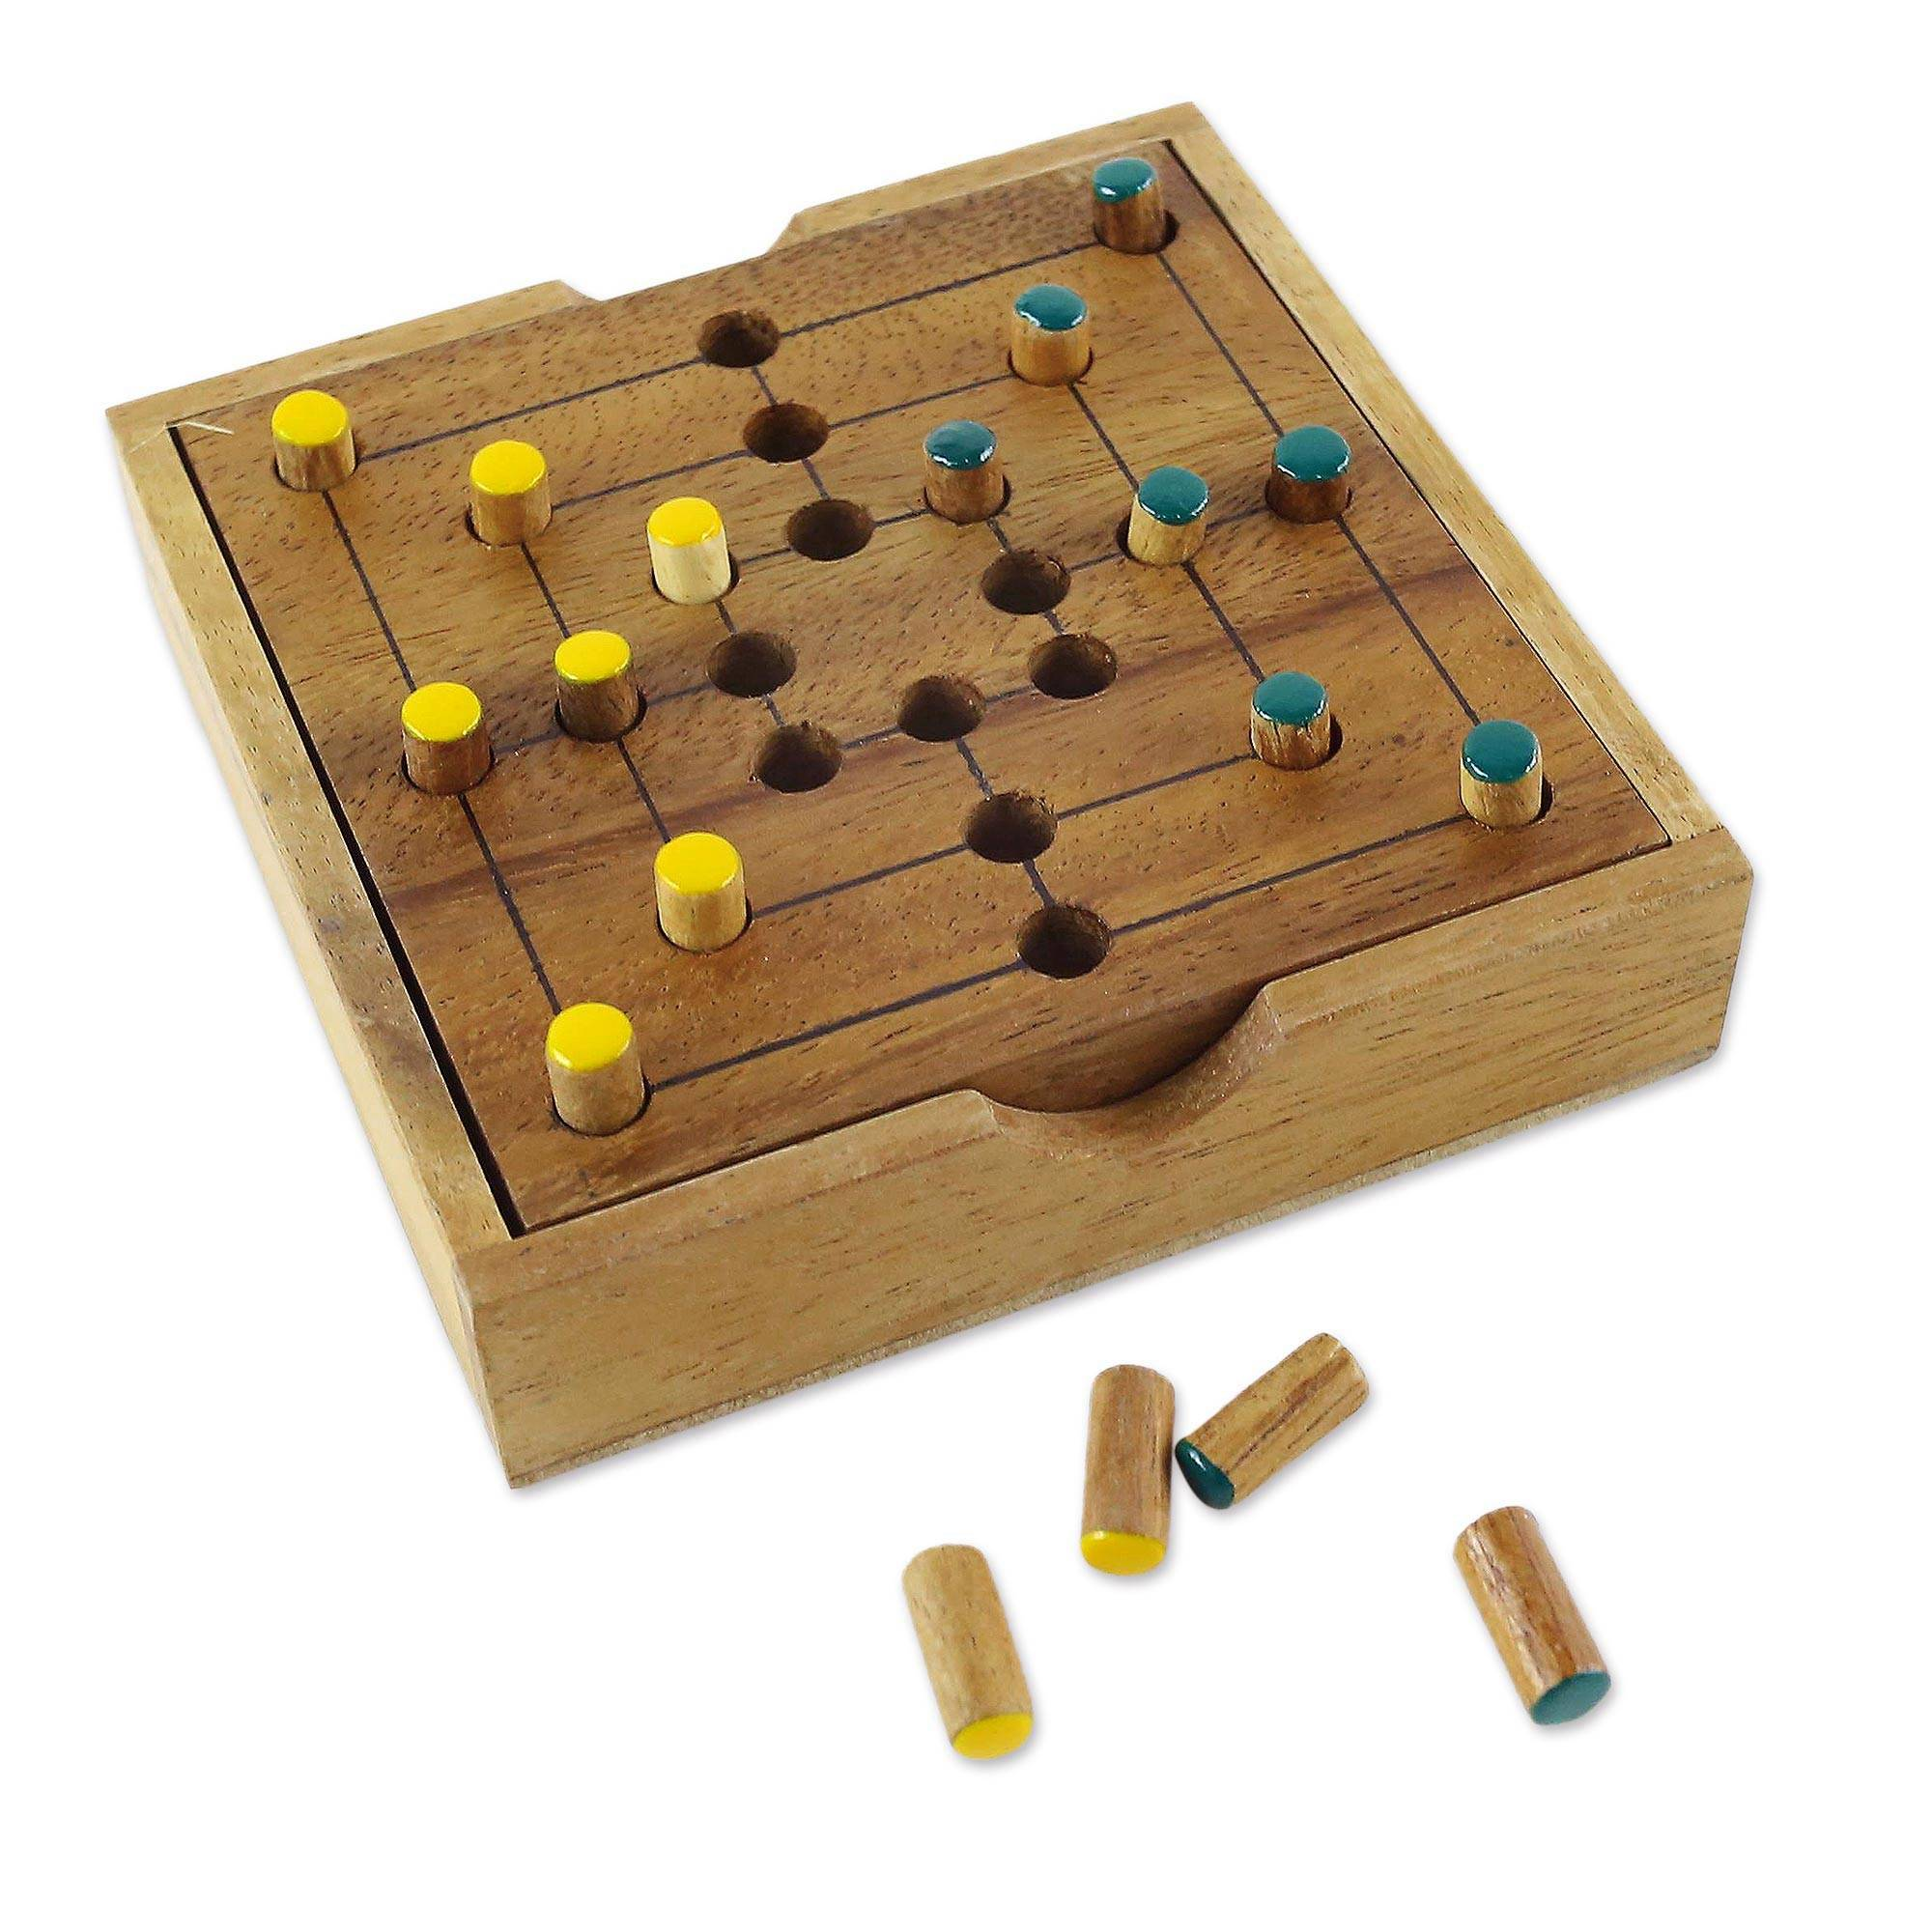 card game set wood handcrafted india full house place to call home box set Wood game, u0027Strategy Squareu0027 - Hand Made Wood Pegs Board Game from Thailand